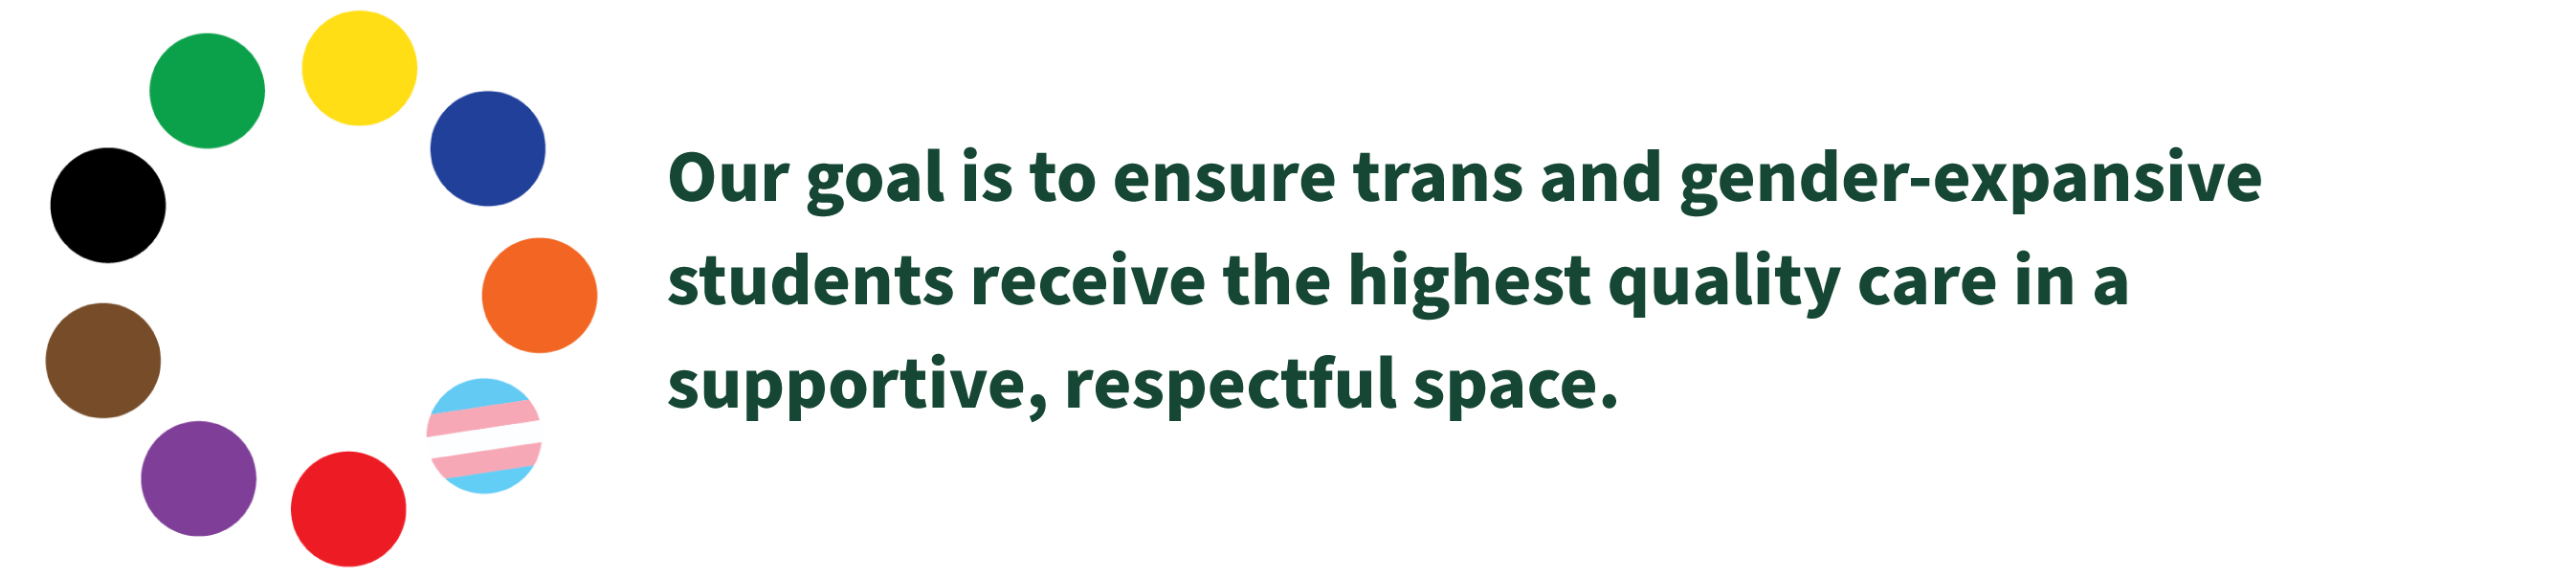 """Gender-Affirming Care motto """"Our goal is to ensure trans and gender-expansive students receive the highest quality care in a supportive, respectful space."""""""